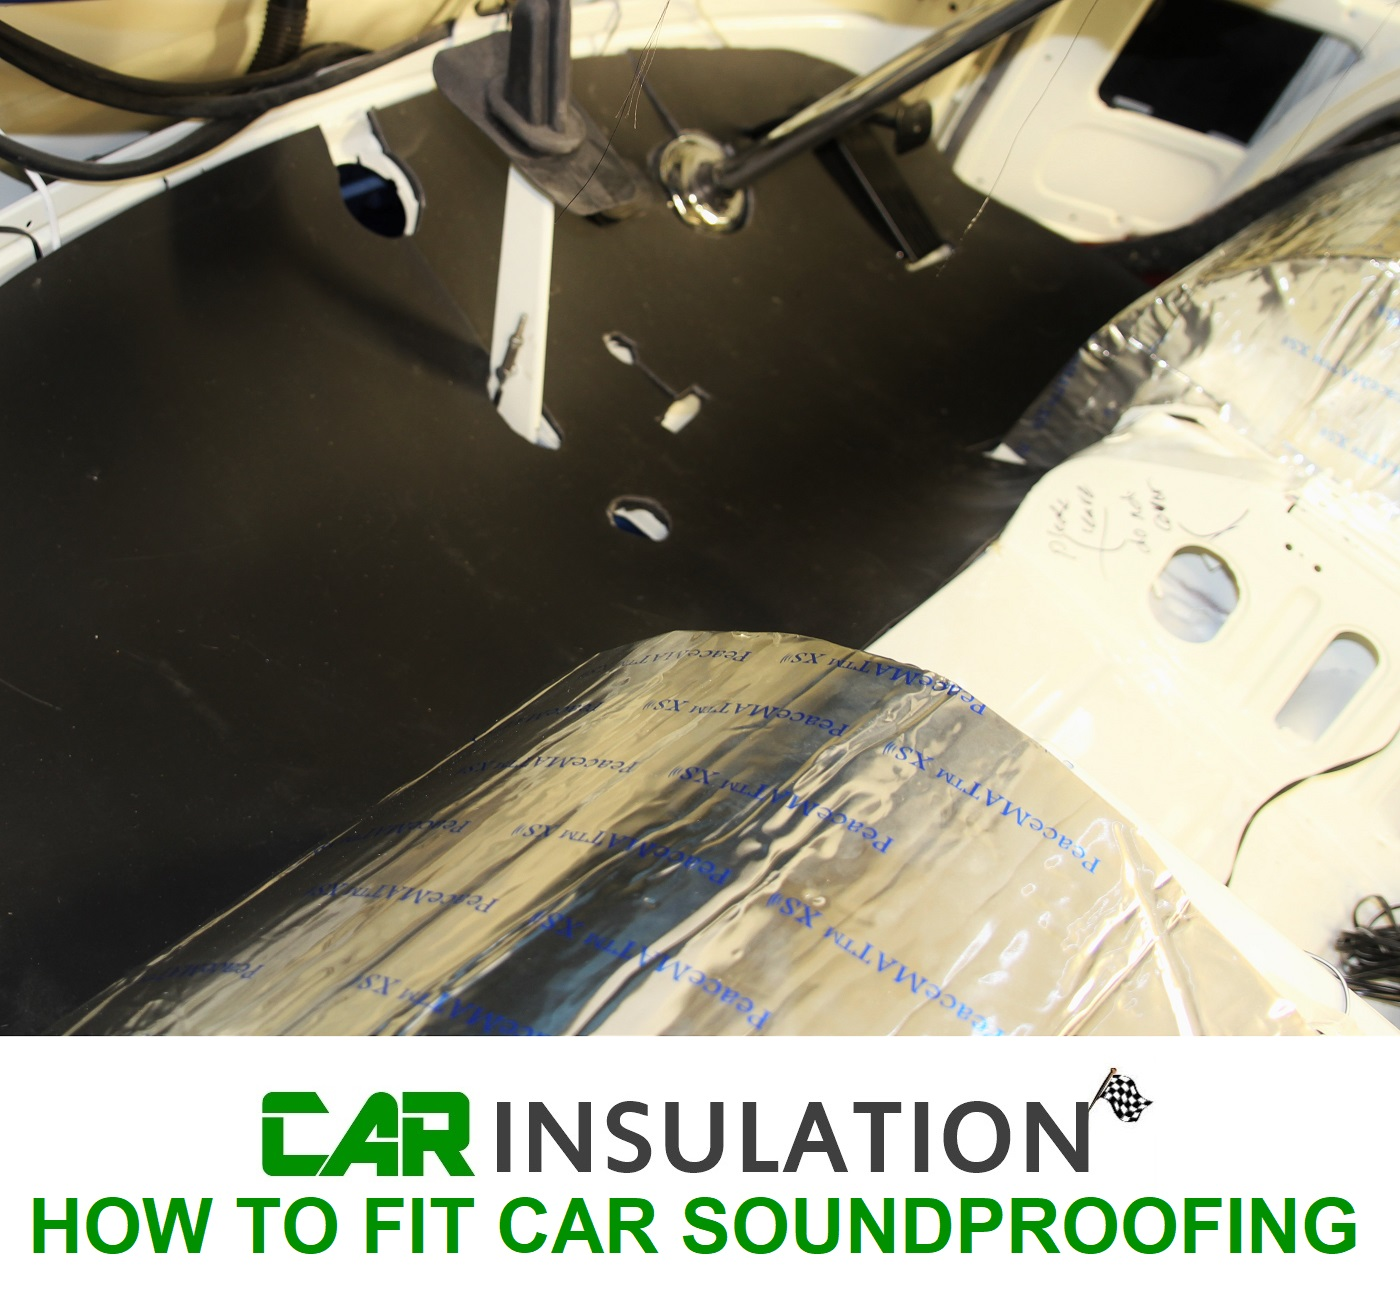 HOW TO FIT CAR SOUNDPROOFING